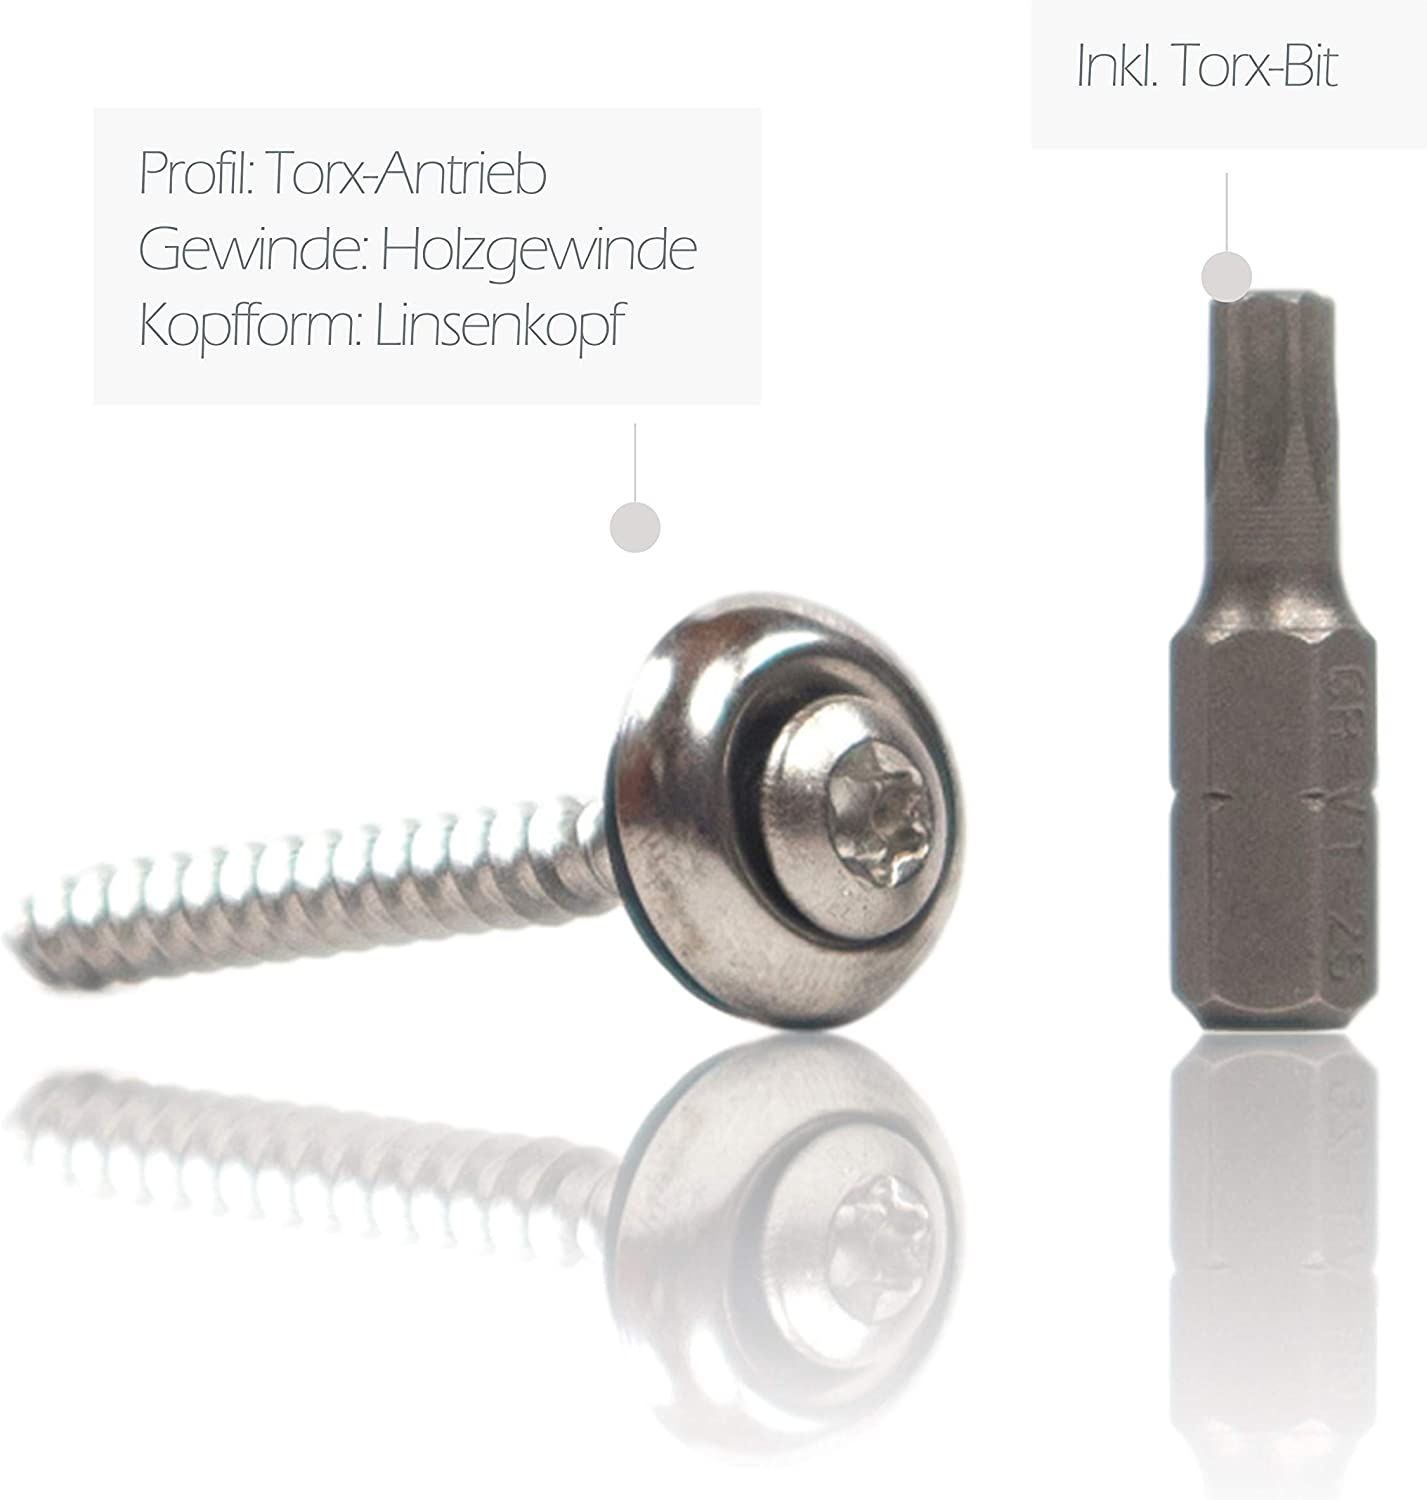 Spengler Screws,Stainless Steel V2A Screw with Rubber Sealing Washer,Length